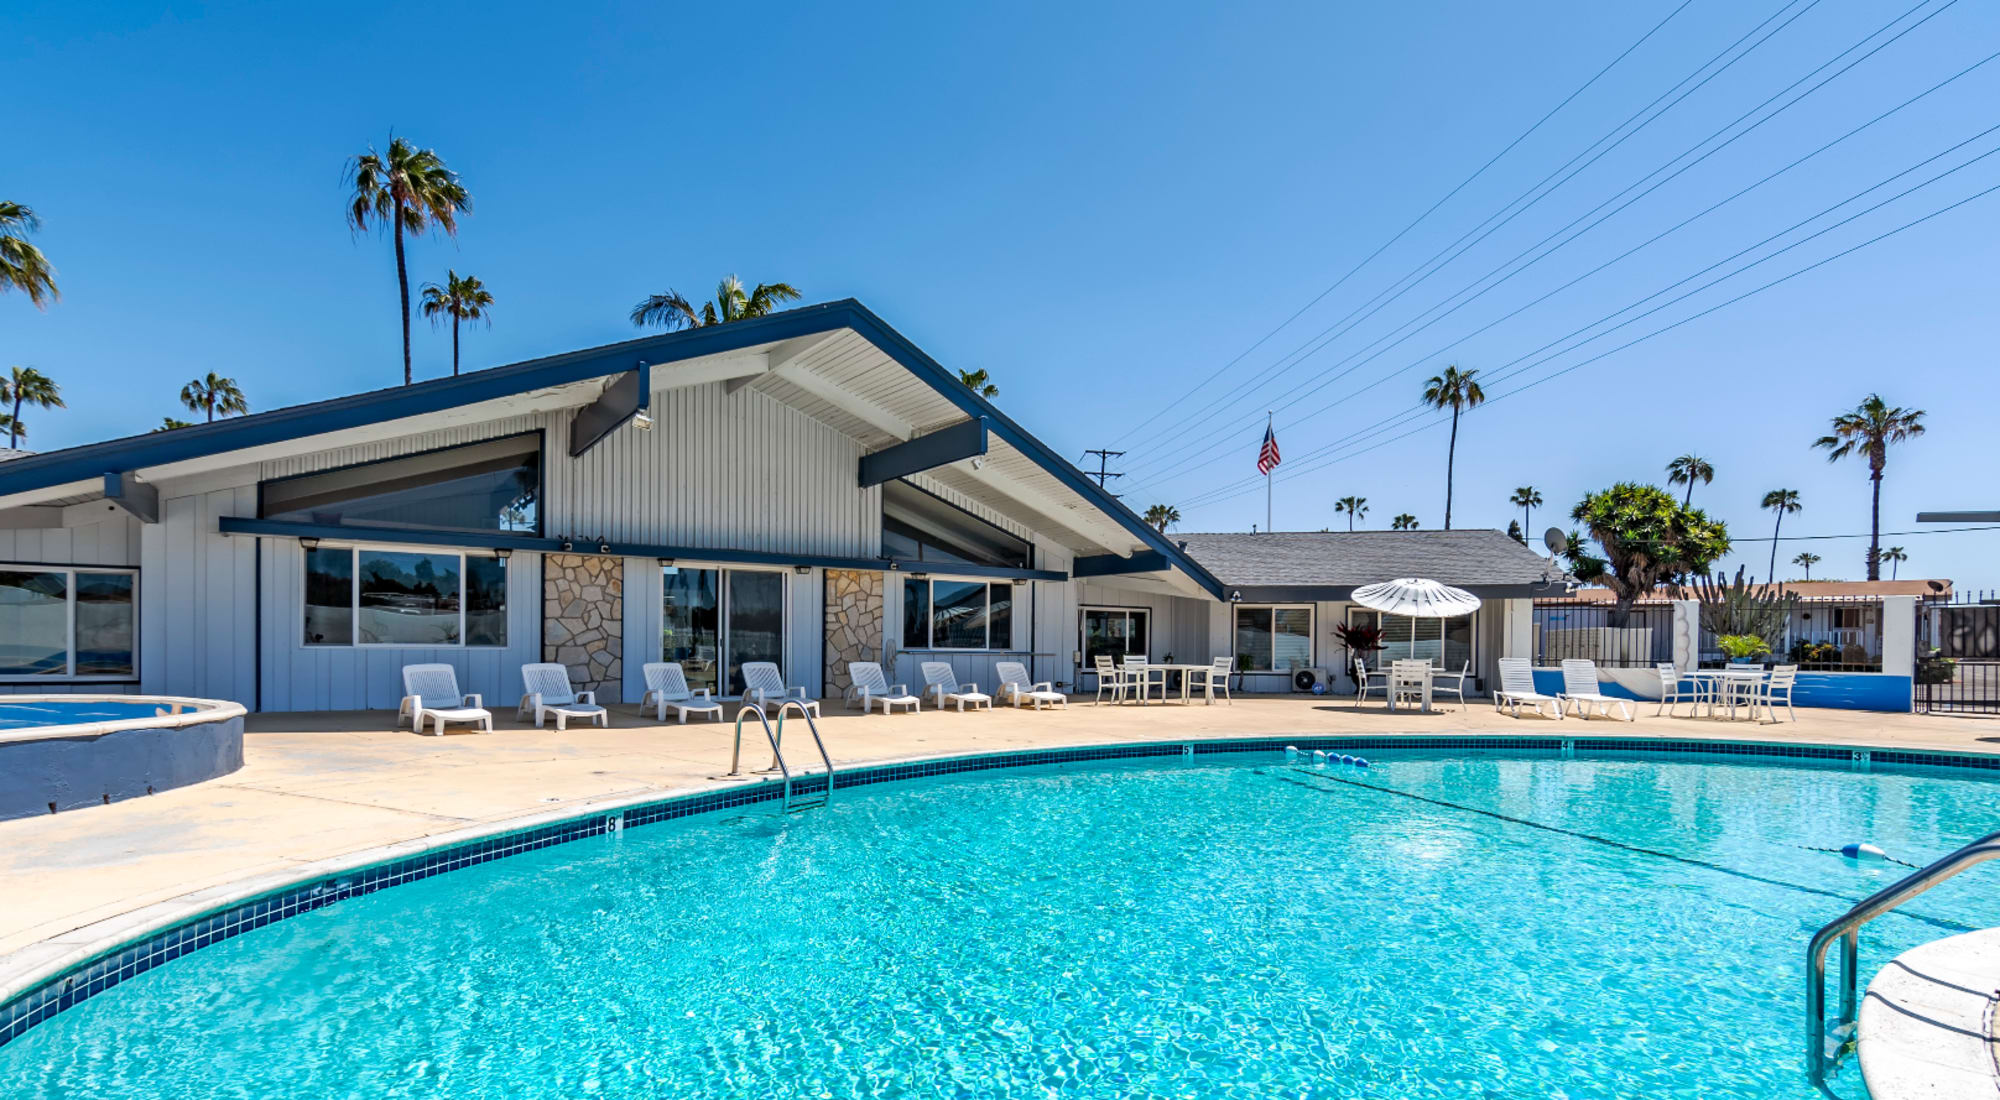 Mobile homes at Brentwood in Chula Vista, California